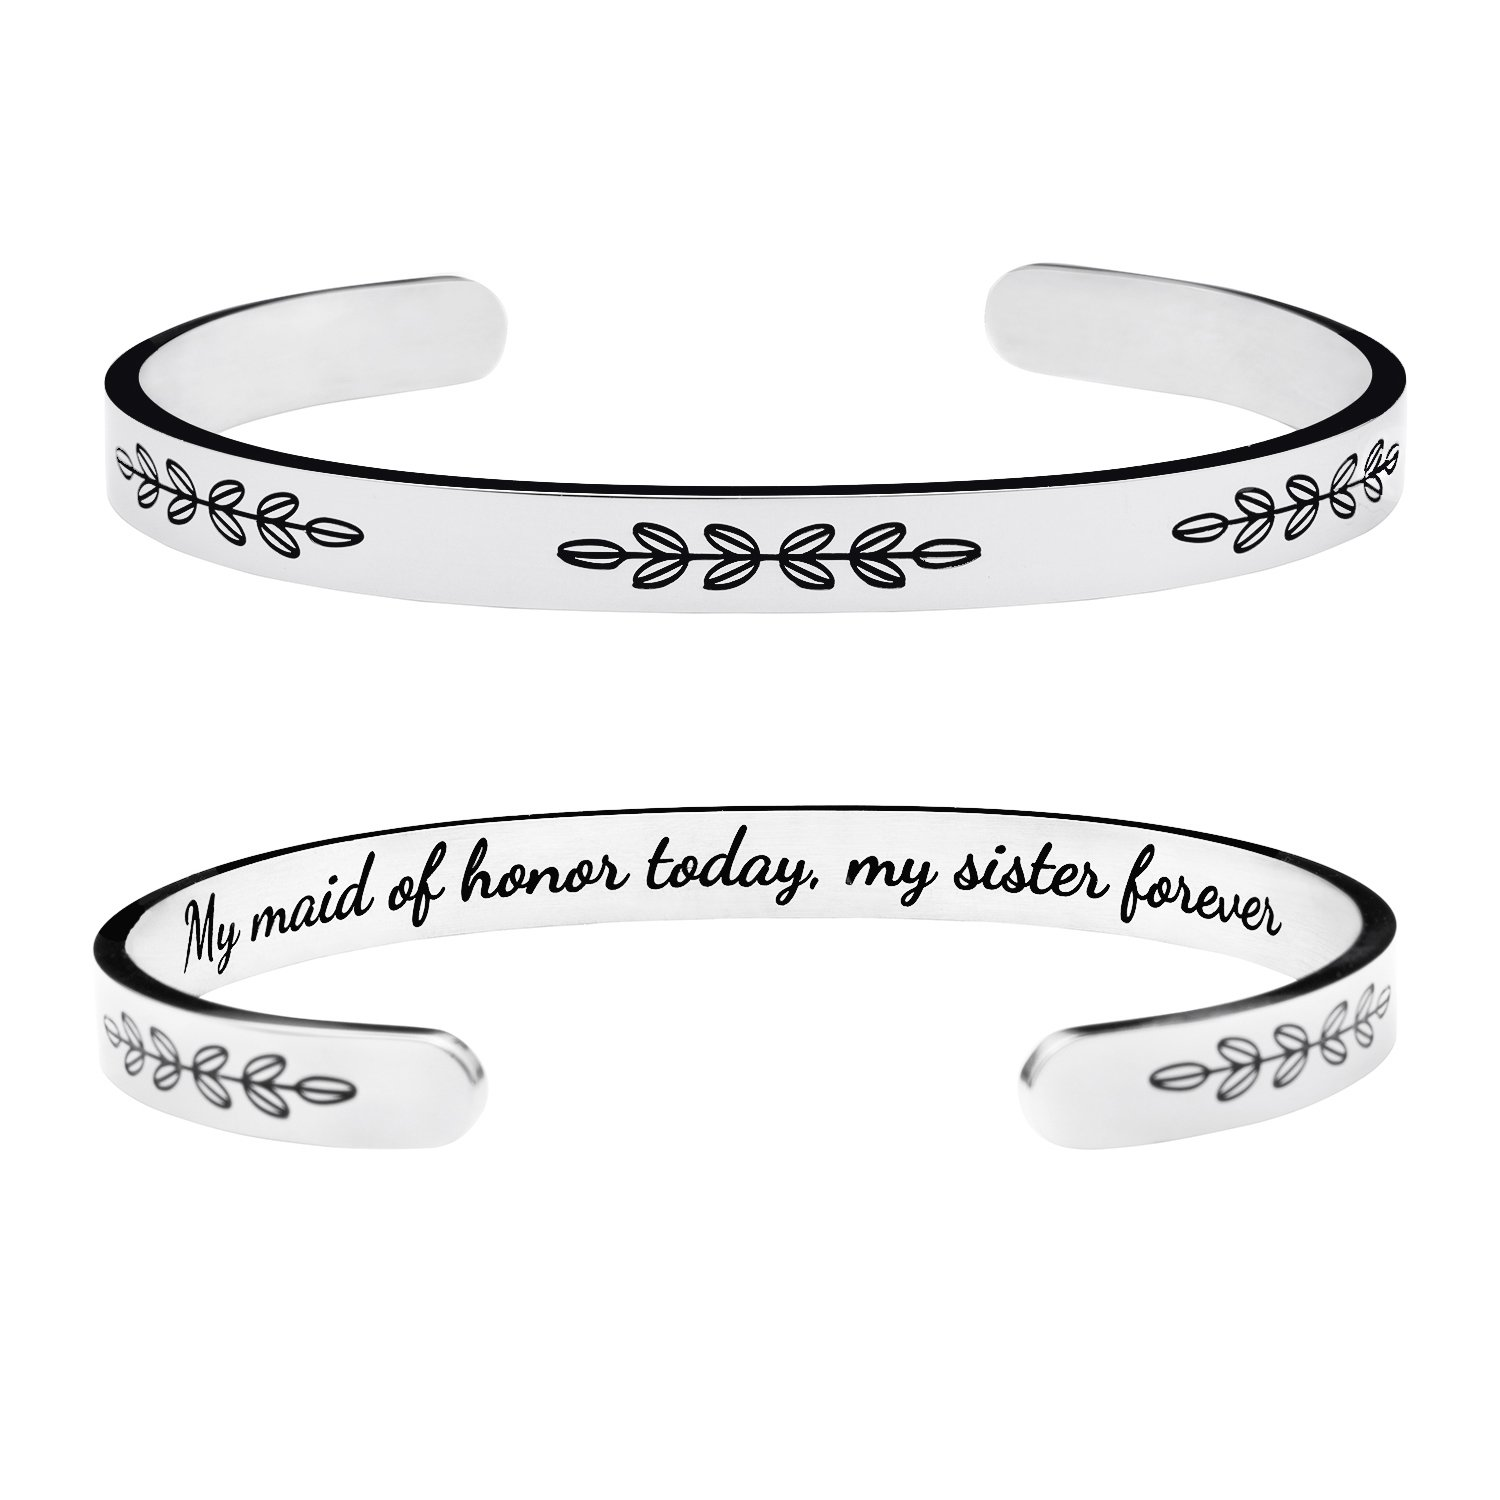 Yiyangjewelry Bridesmaid Gift Bridal Wedding Party Bangle Cuff Bracelet Inspirational Friendship Sister Engraved My Maid of Honor Today My Sister Forever